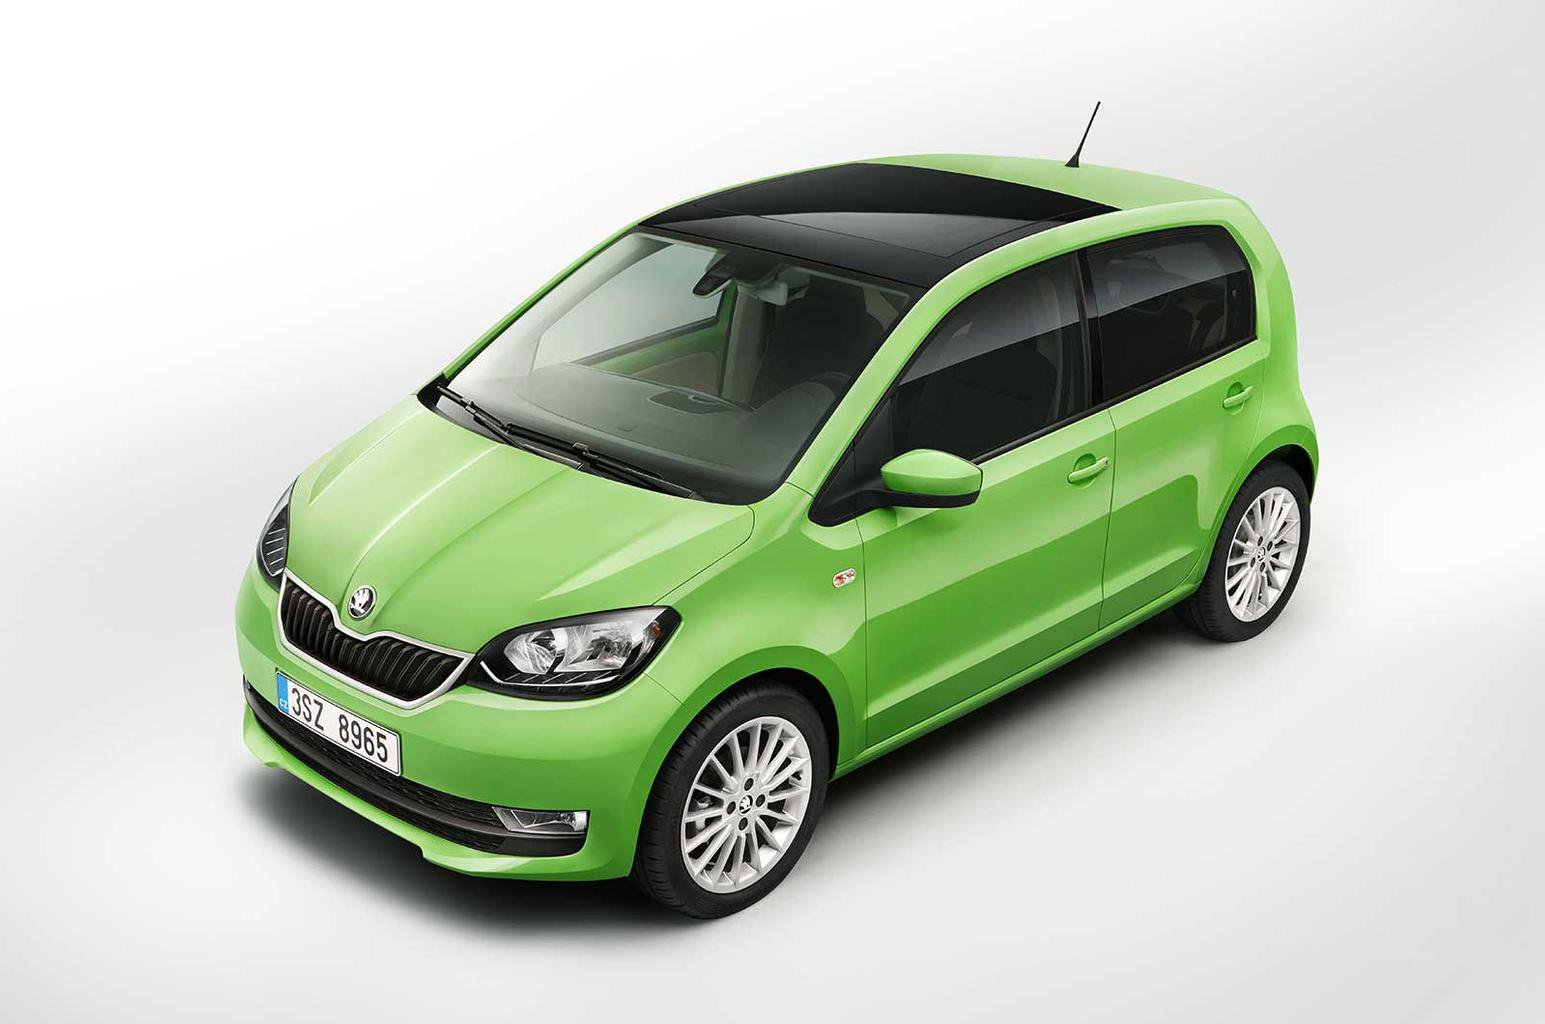 Facelifted Skoda Citigo revealed